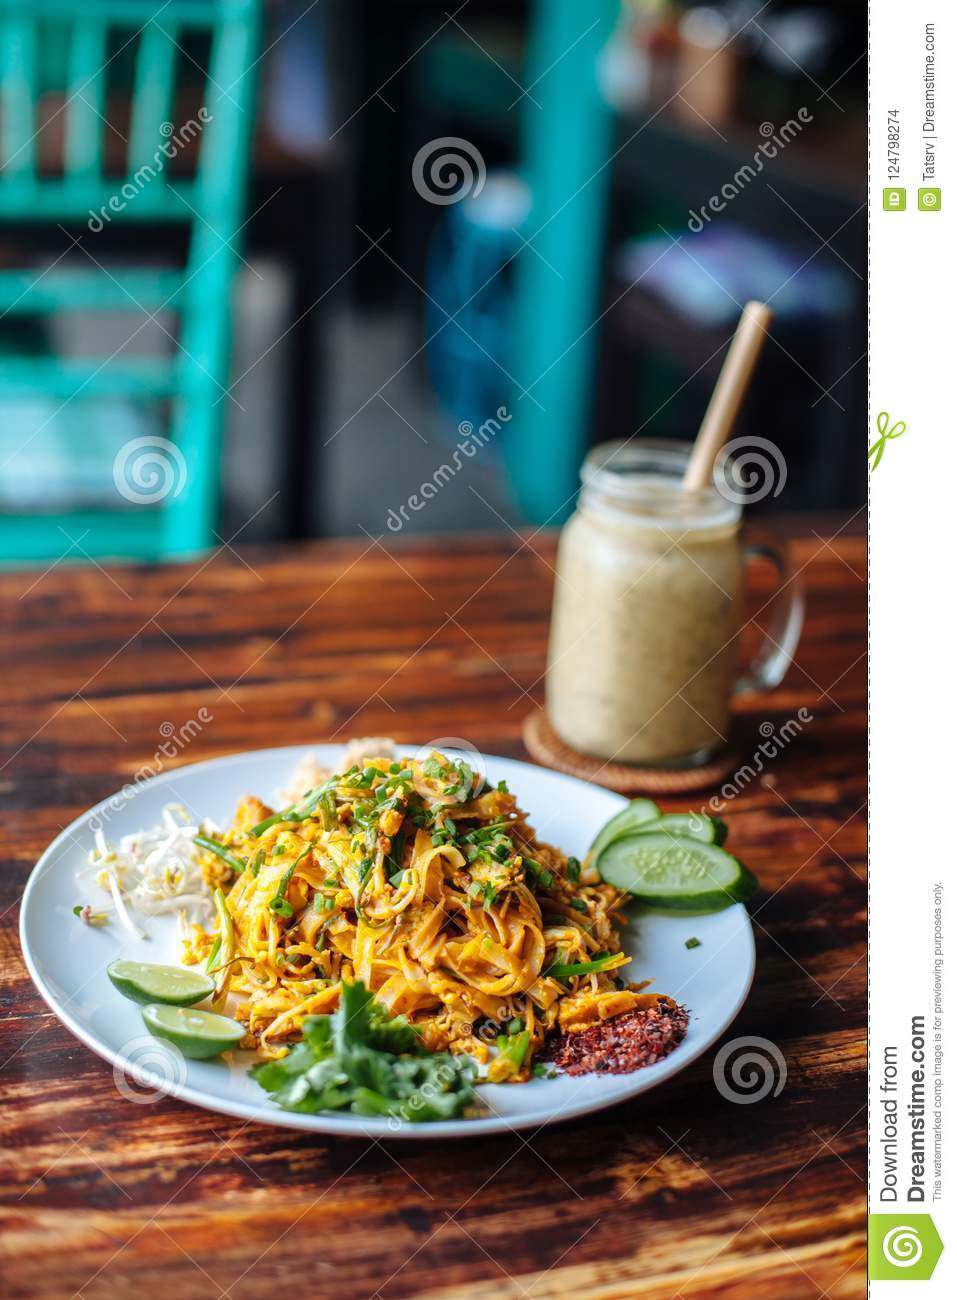 Healthy Vegetarian vegan menu Pad Thai, stir-fried rice noodles, is one of Thailand`s national main dish and banana smoothies on